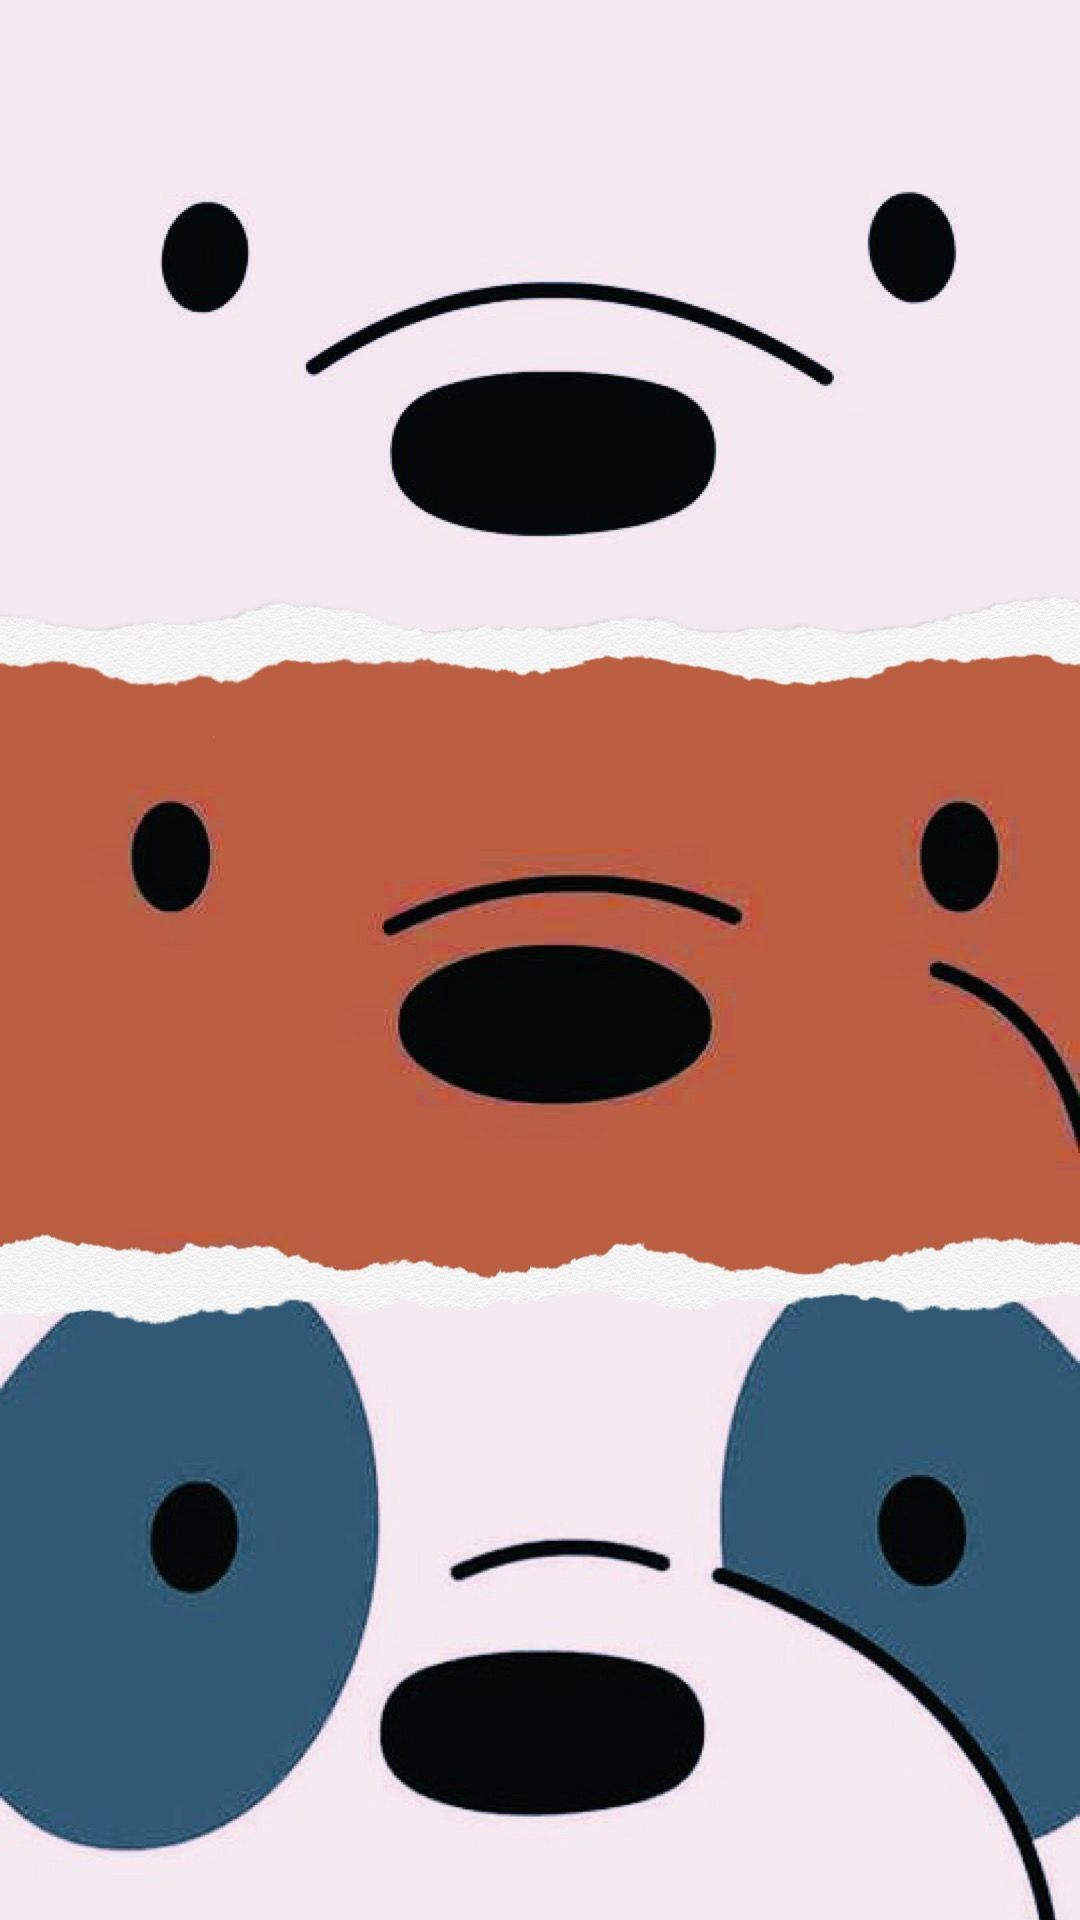 We Bare Bears Wallpapers Wallpapers On Wall Bear Wallpaper We Bare Bears Wallpapers Cute Panda Wallpaper